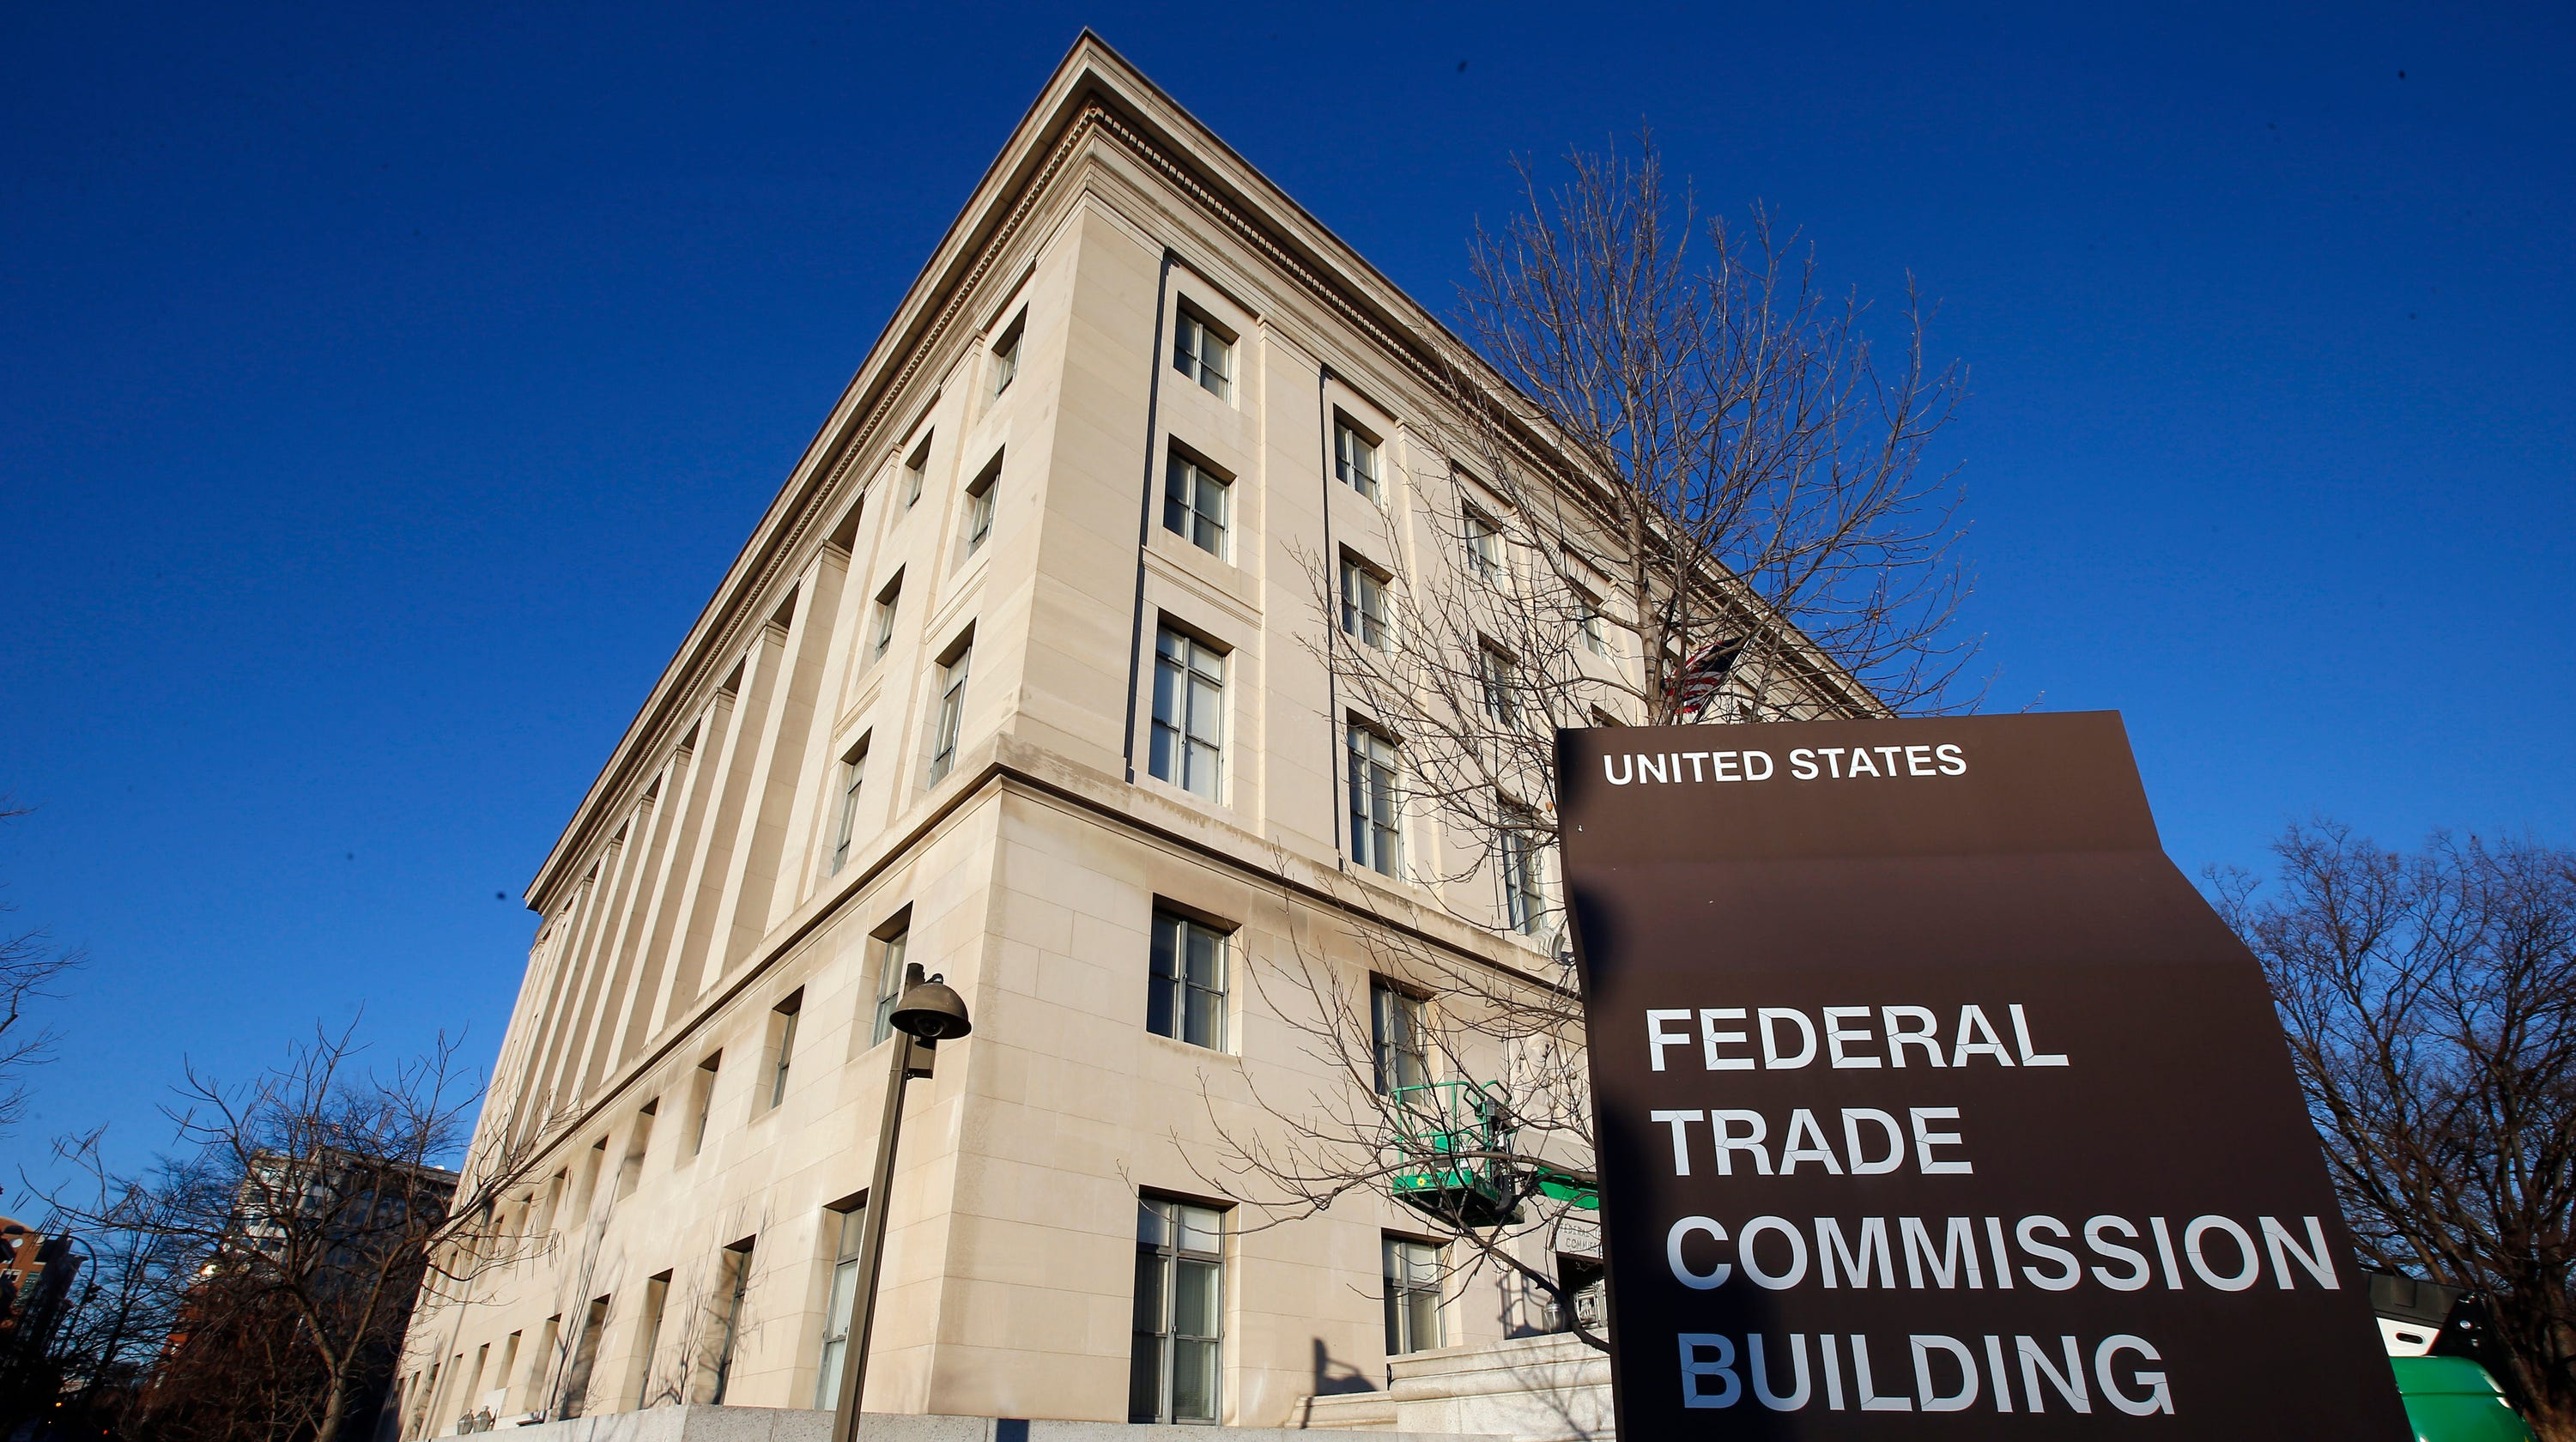 FTC survey: 40 million Americans are victims of fraud